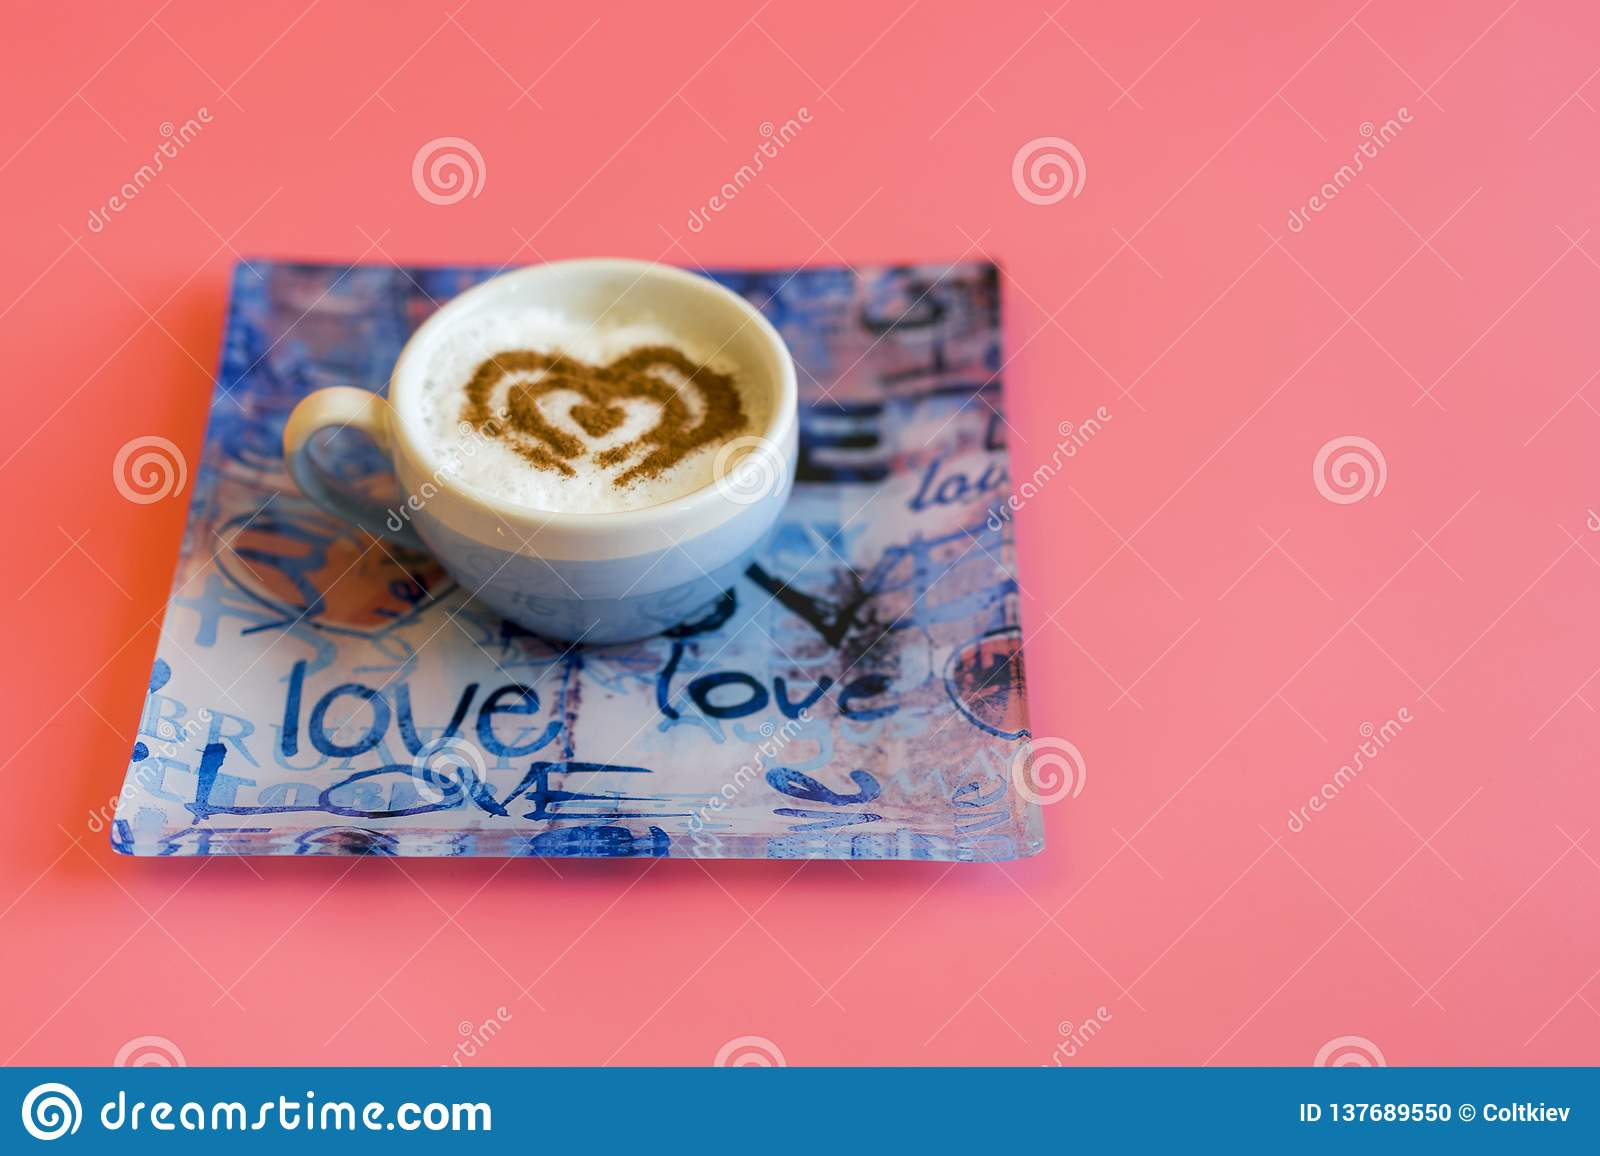 Heart Shape Coffee Cup Concept isolated on pink background. love cup , heart drawing on latte art coffee